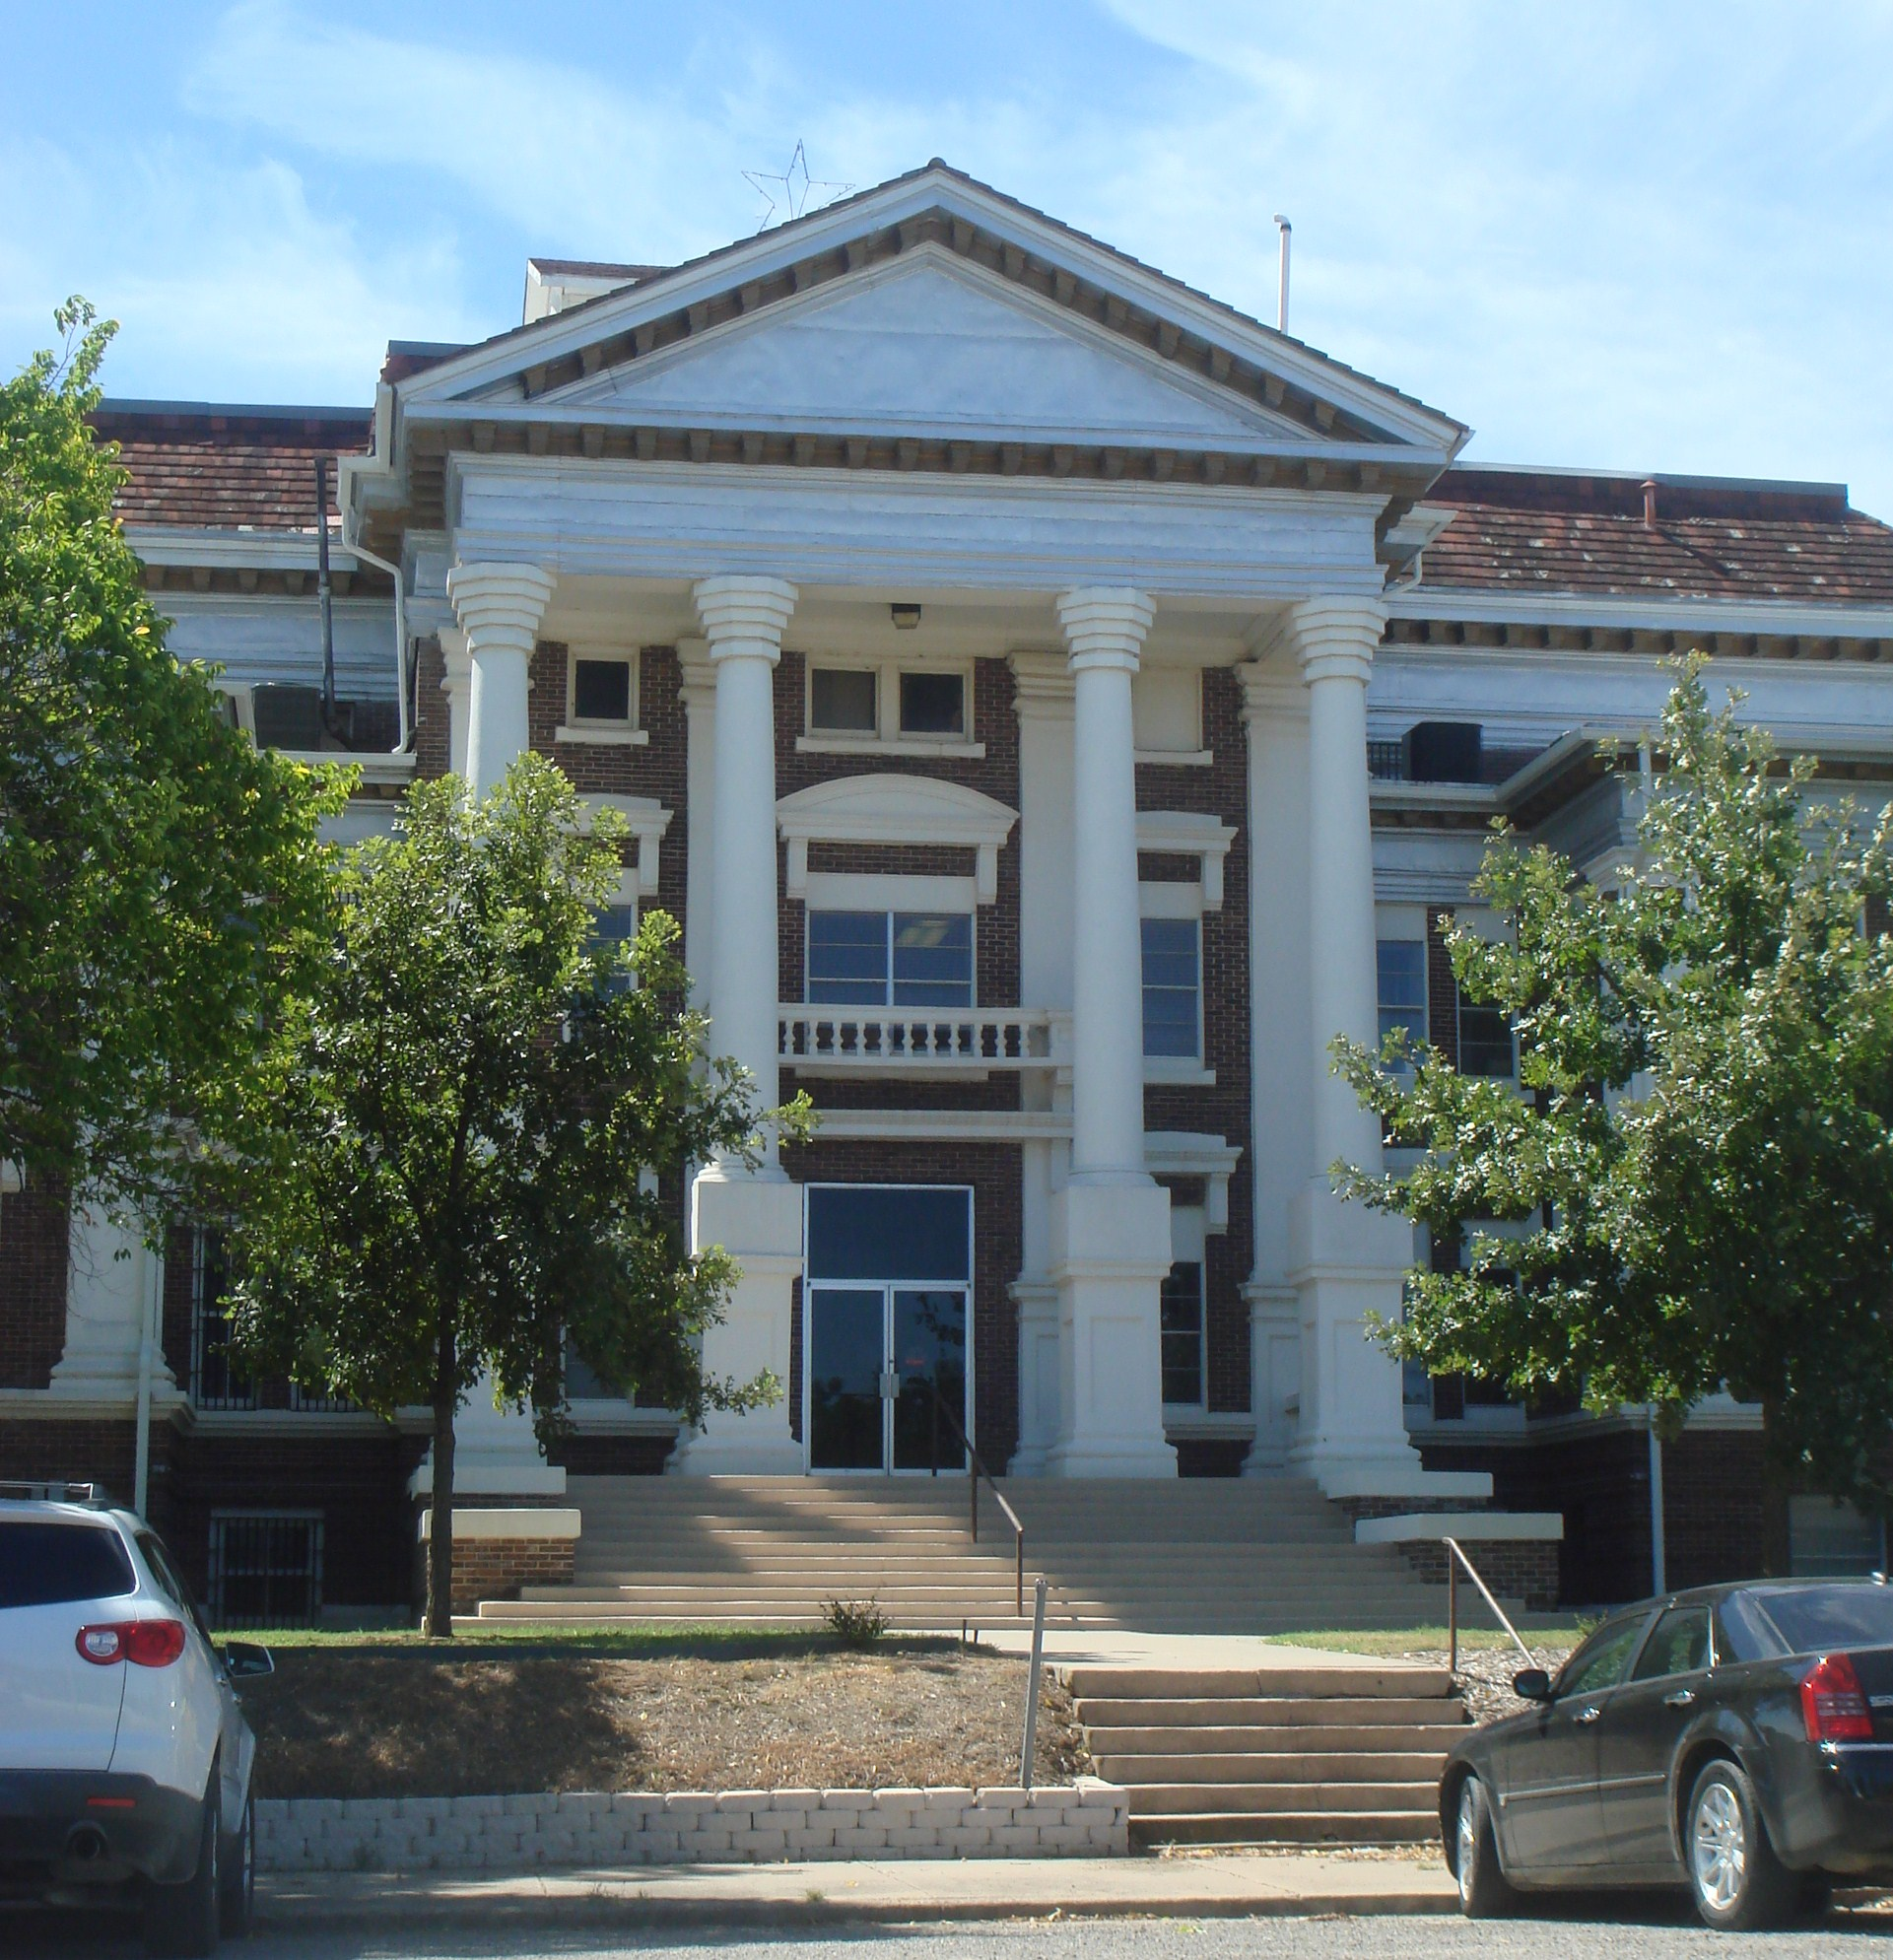 MontagueCty Courthouse.JPG